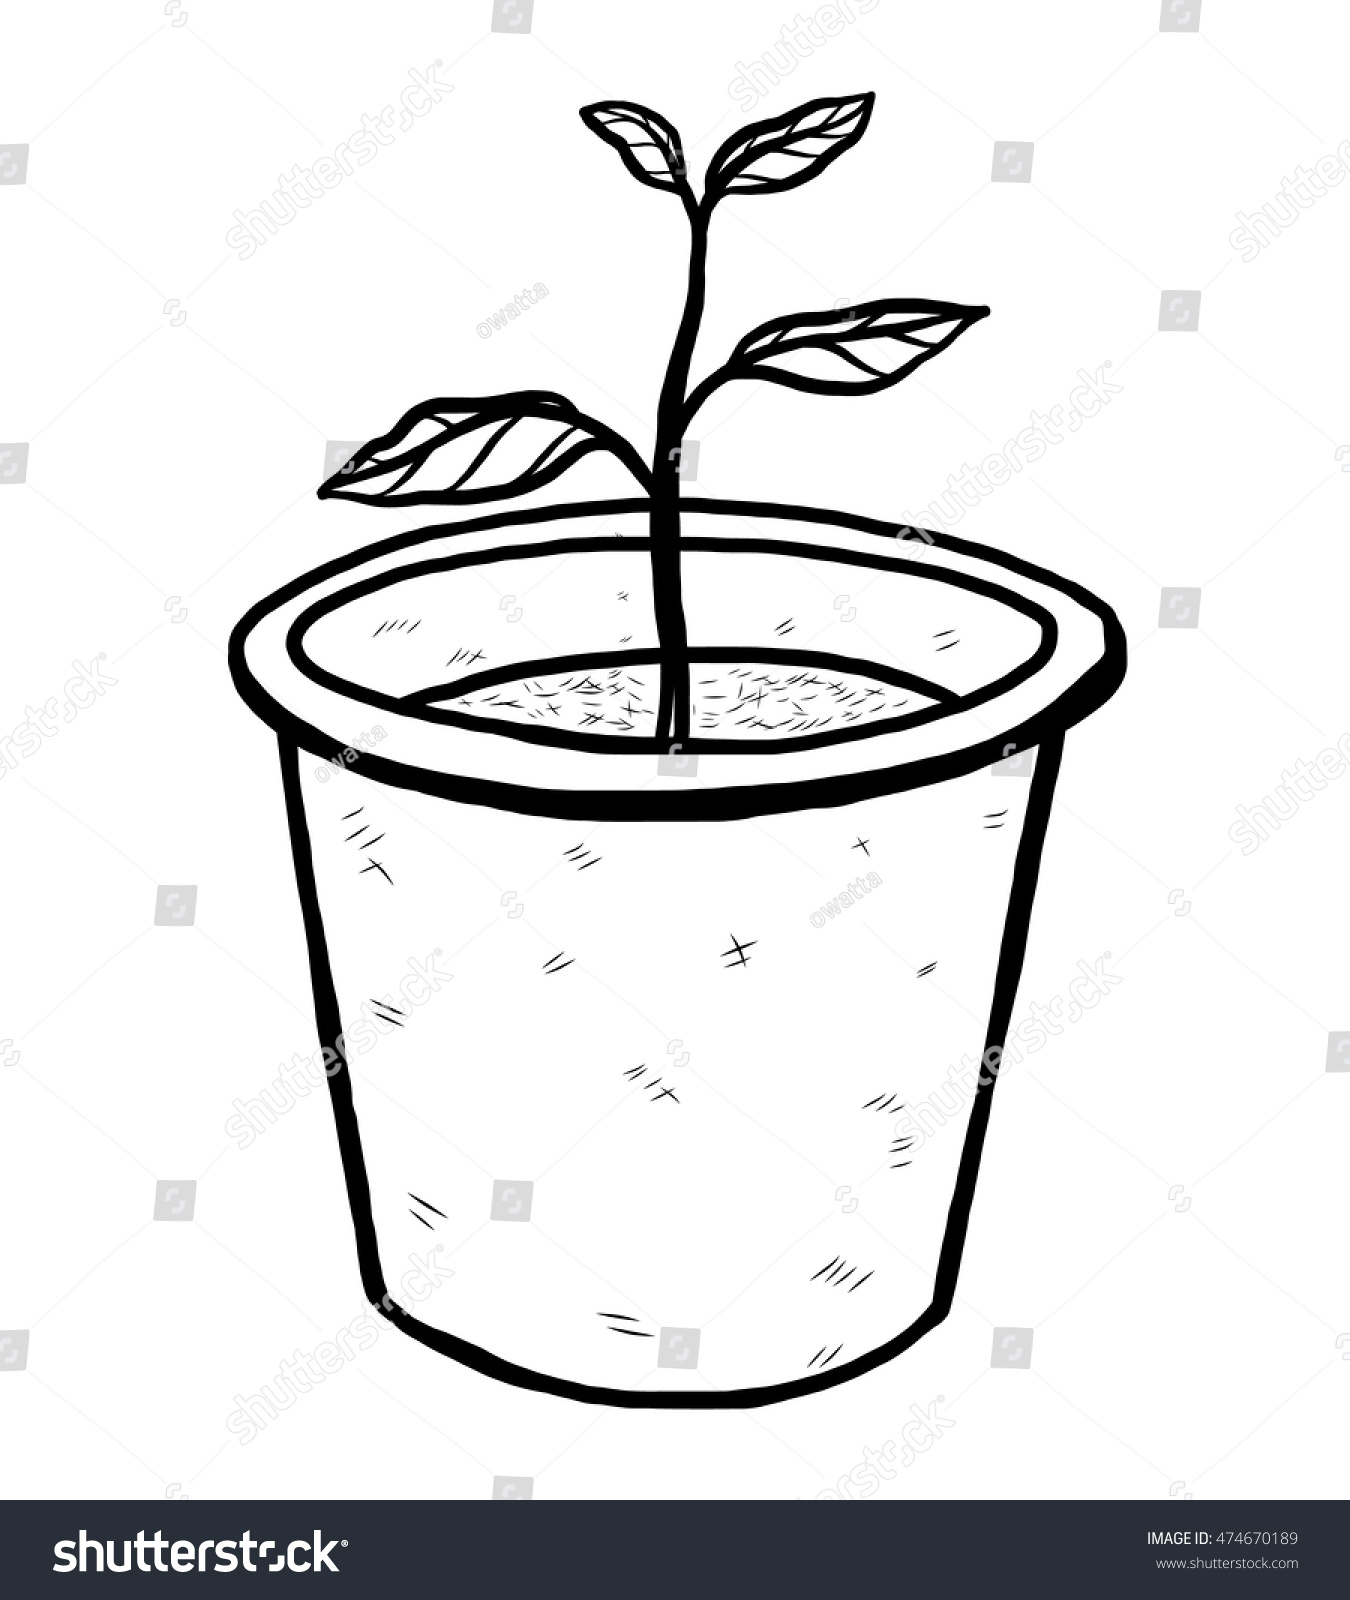 Flower Pot Cartoon Vector Illustration Black Stock Vector Royalty